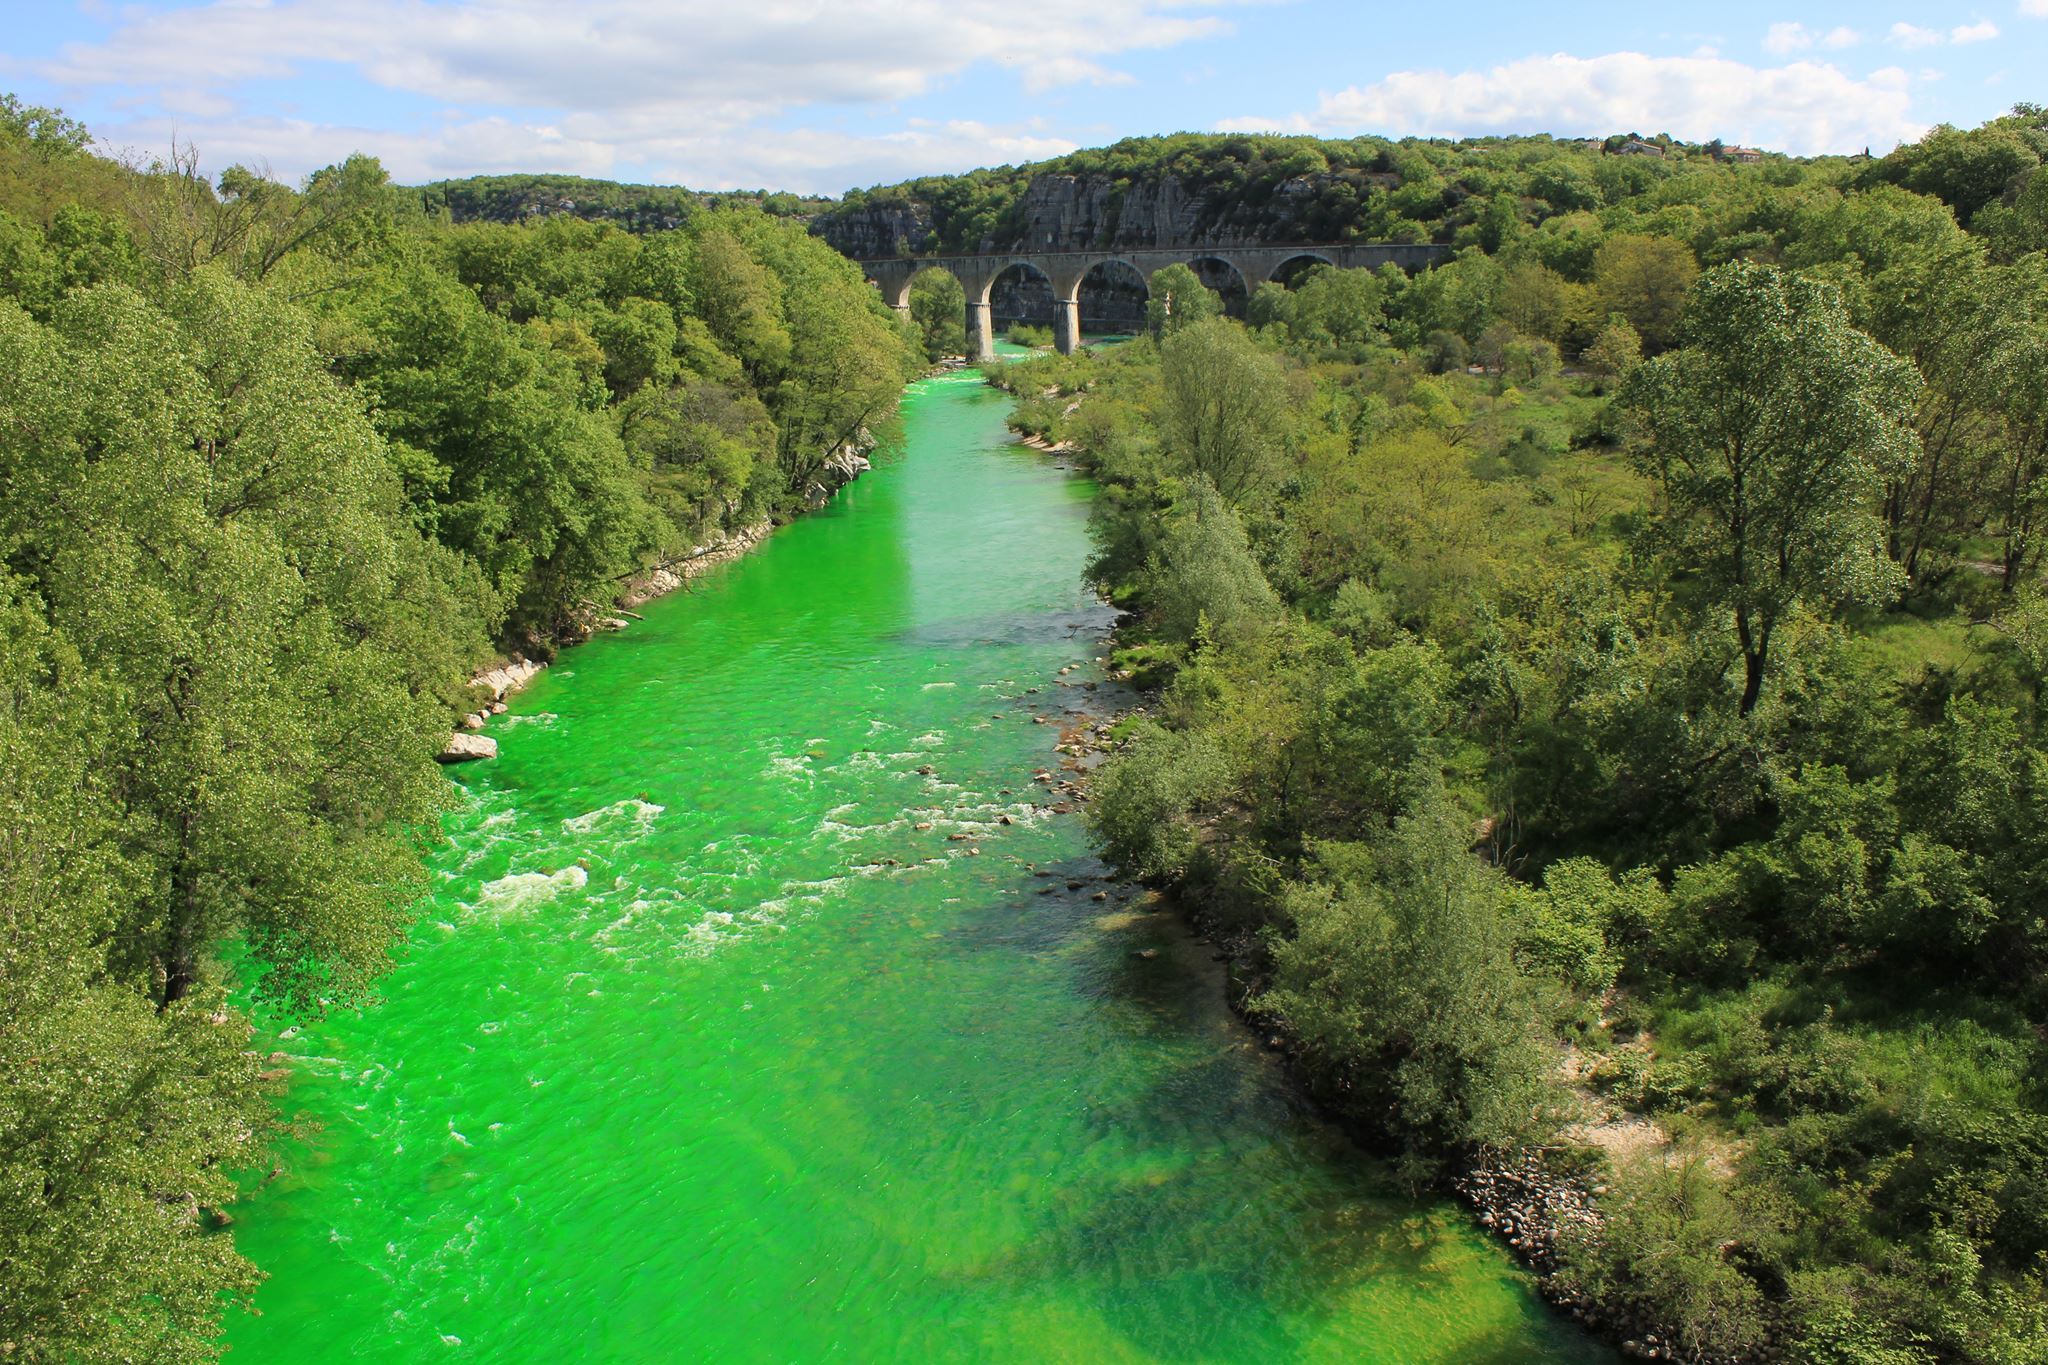 1_Environmentalists are dying France's rivers green